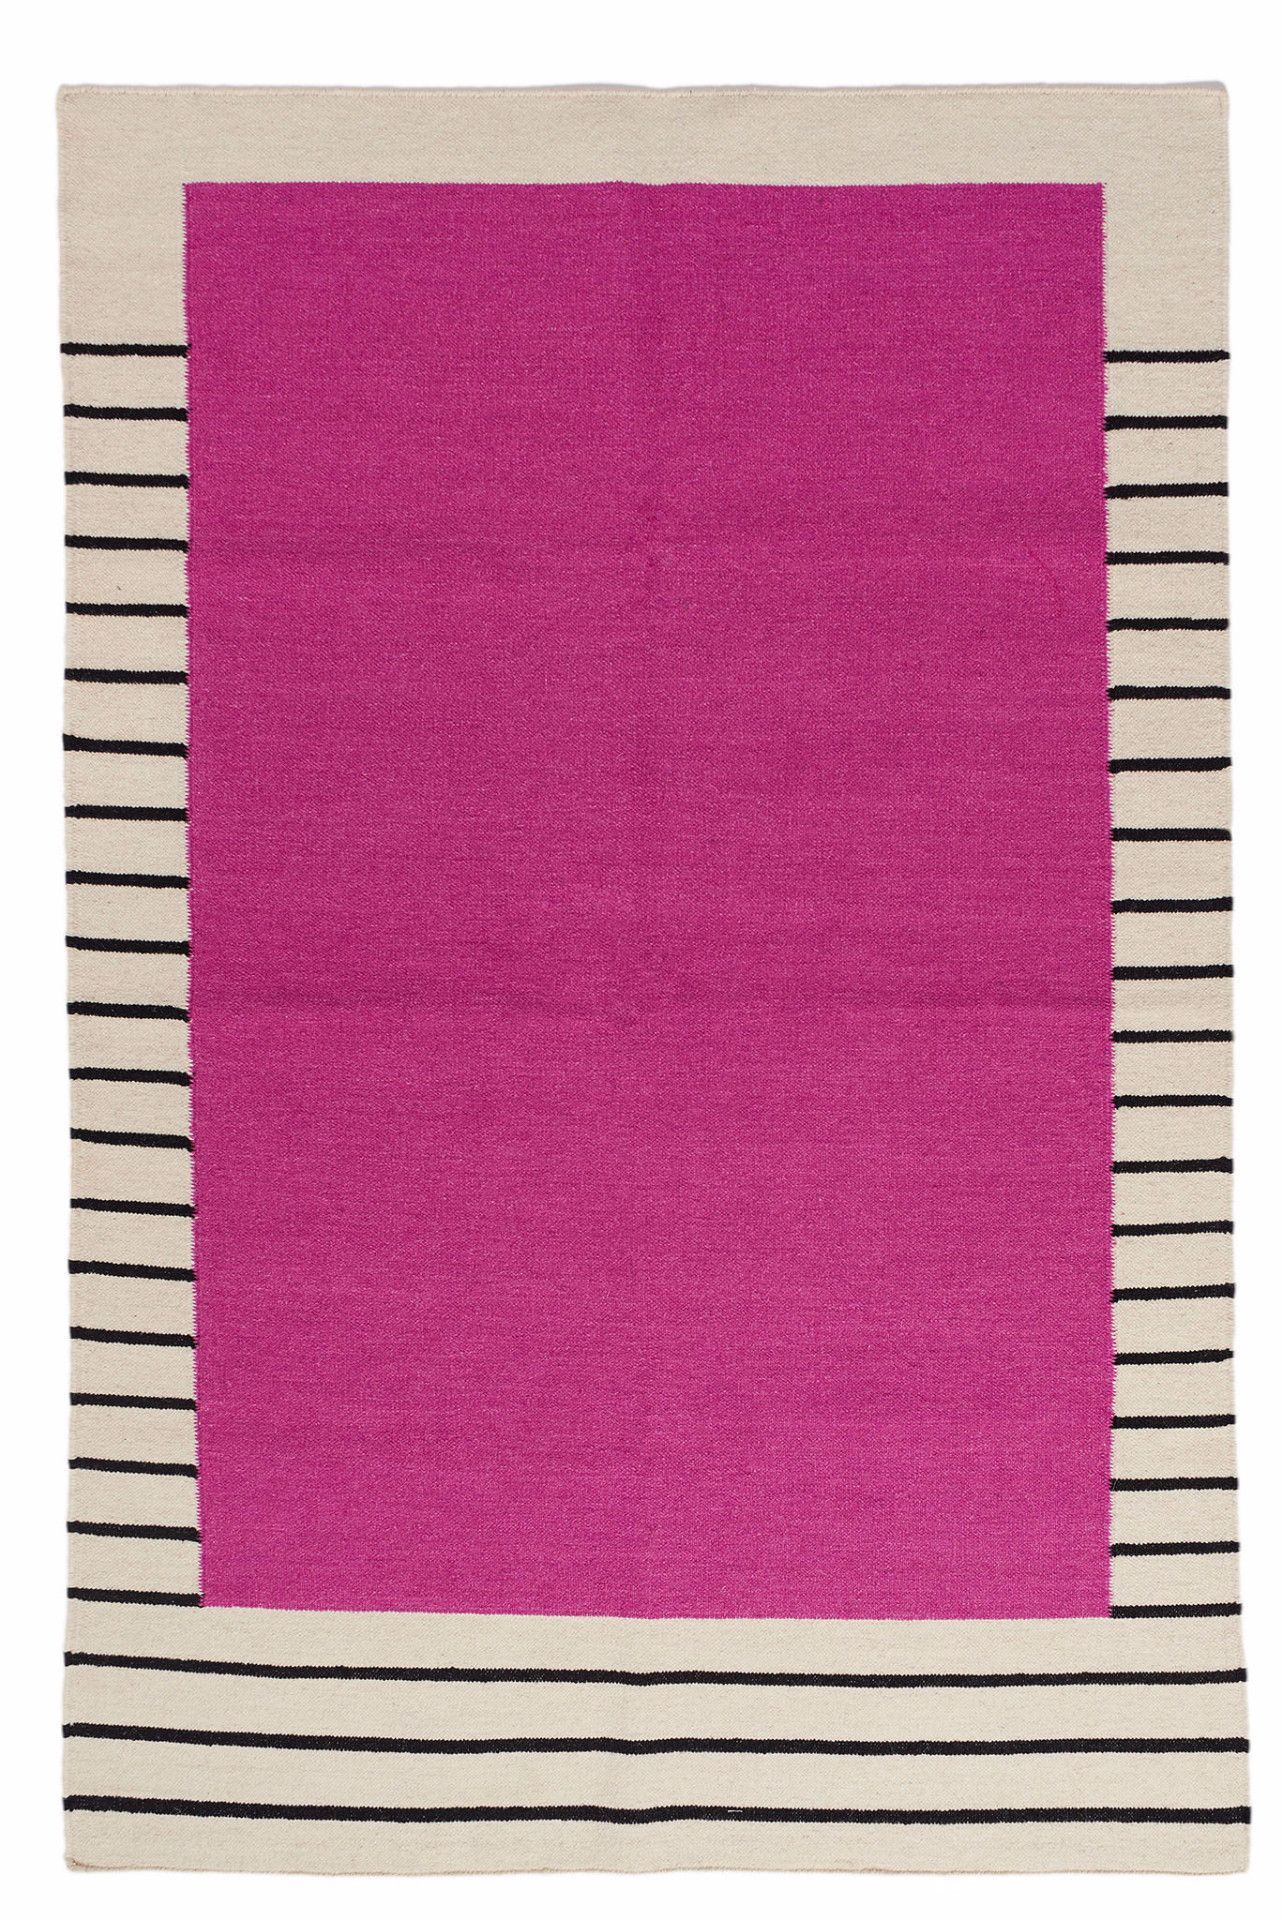 LAST CALL 8x10 Suzanne Flat-Weave Rug, Magenta